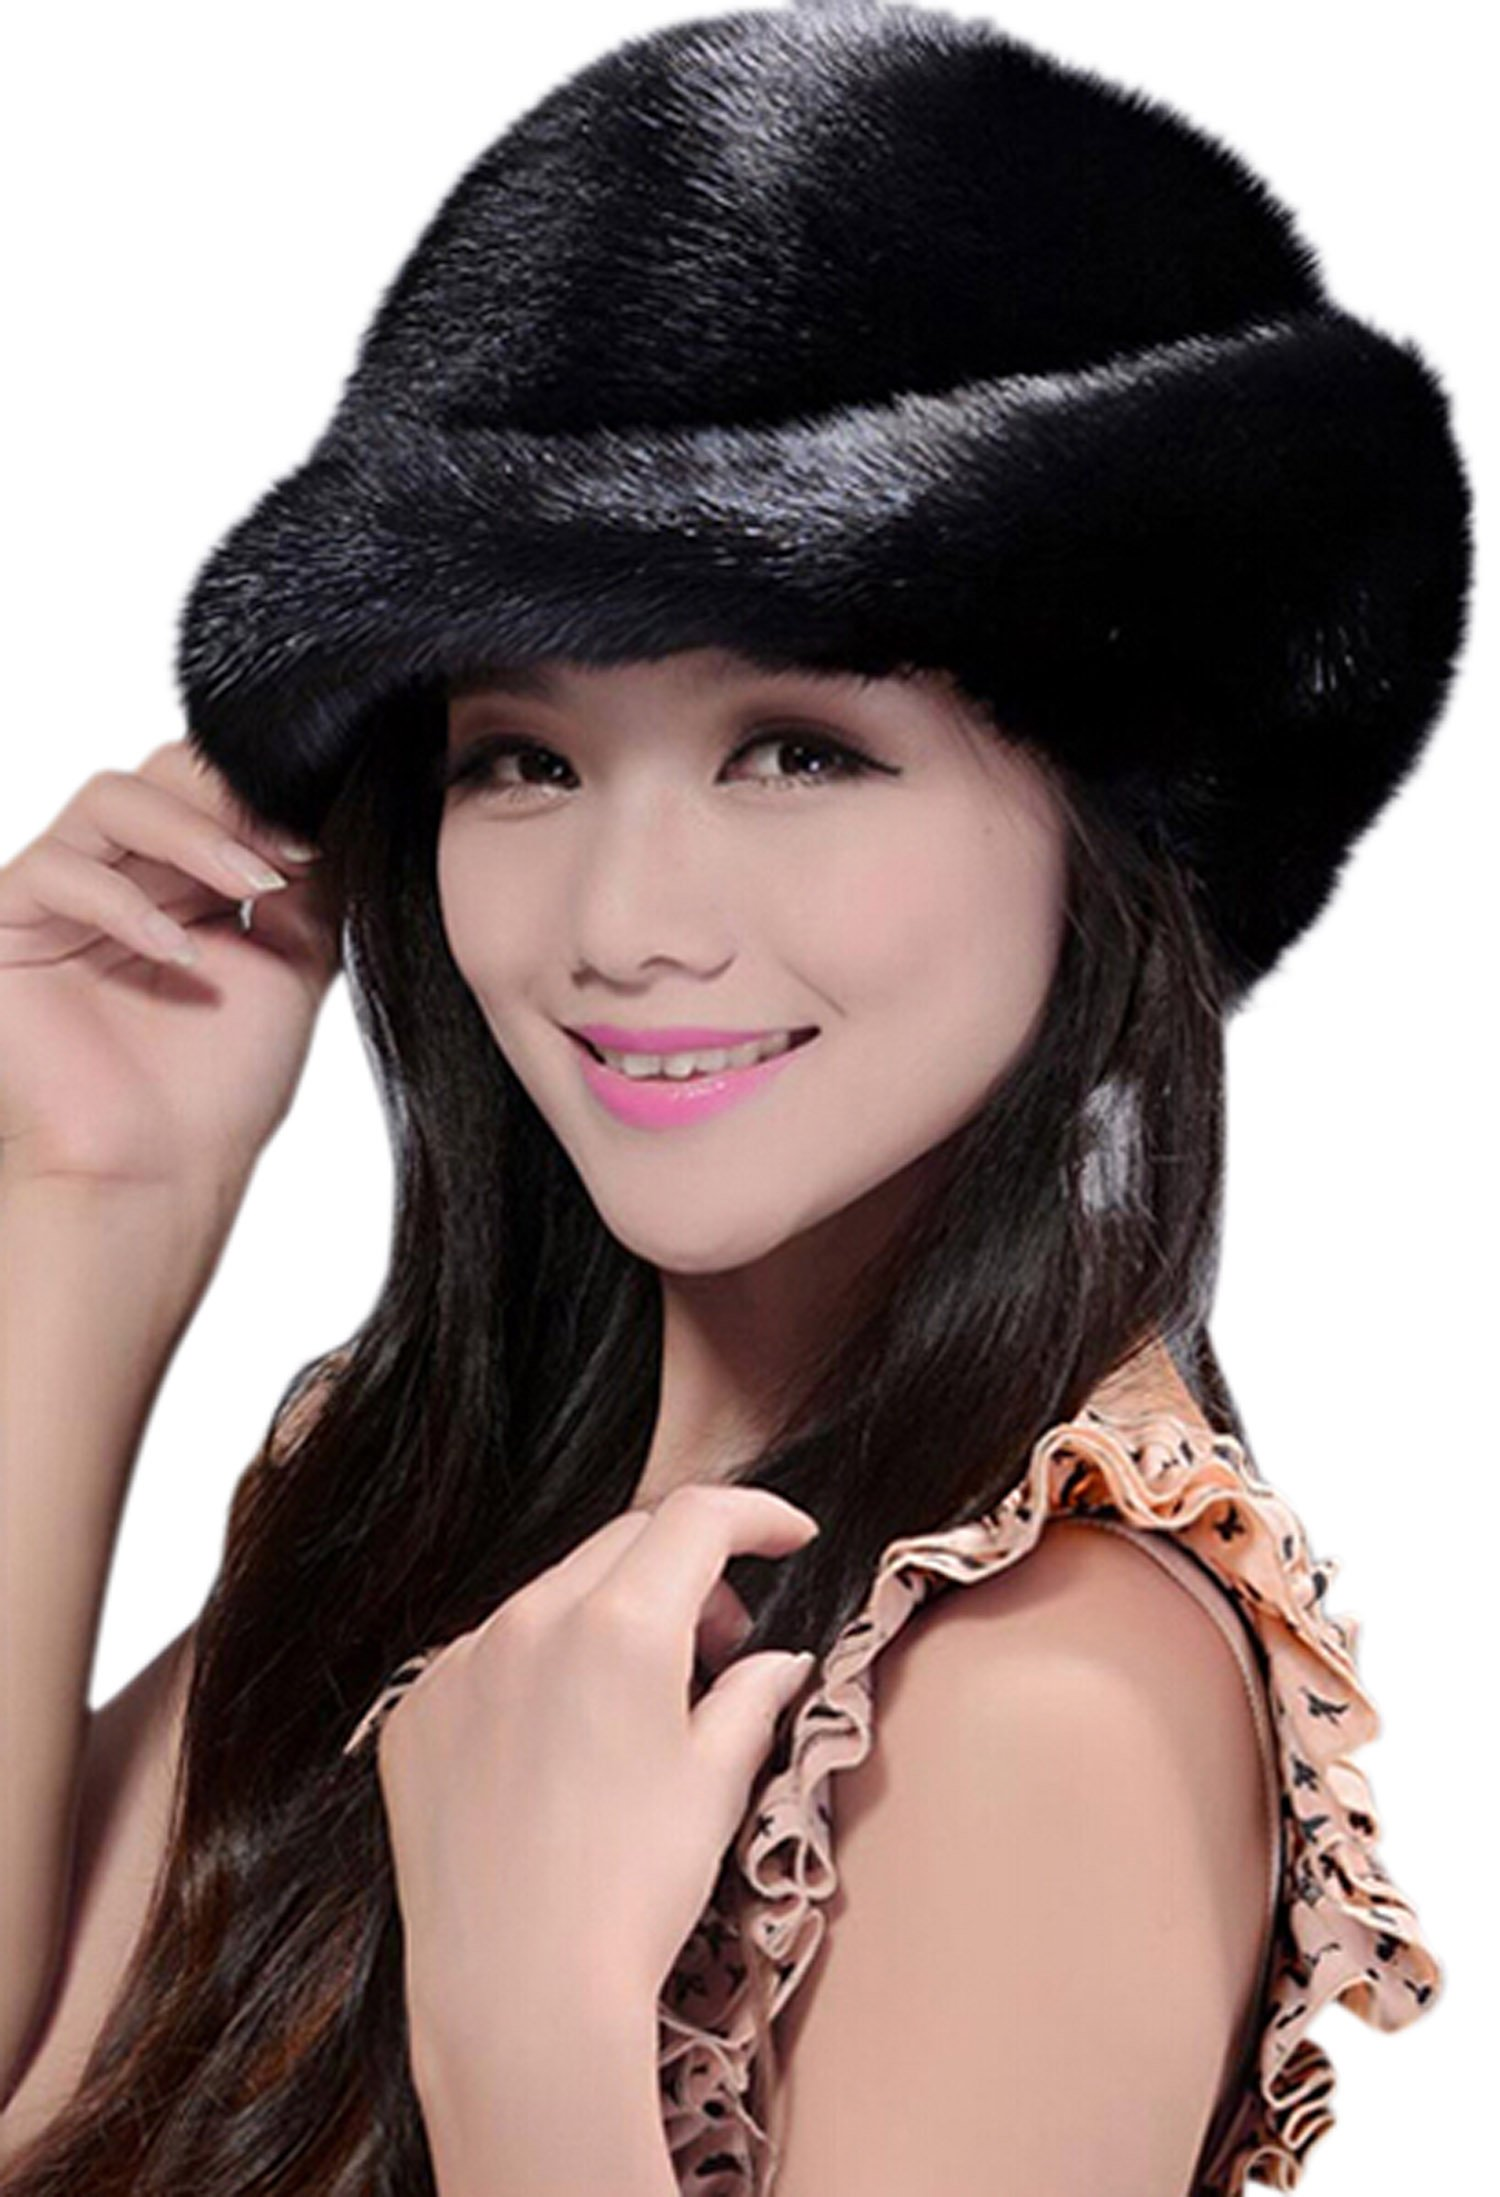 Easting Hot Fashion Women Winter Genuine Mink Fur Hats (Black)